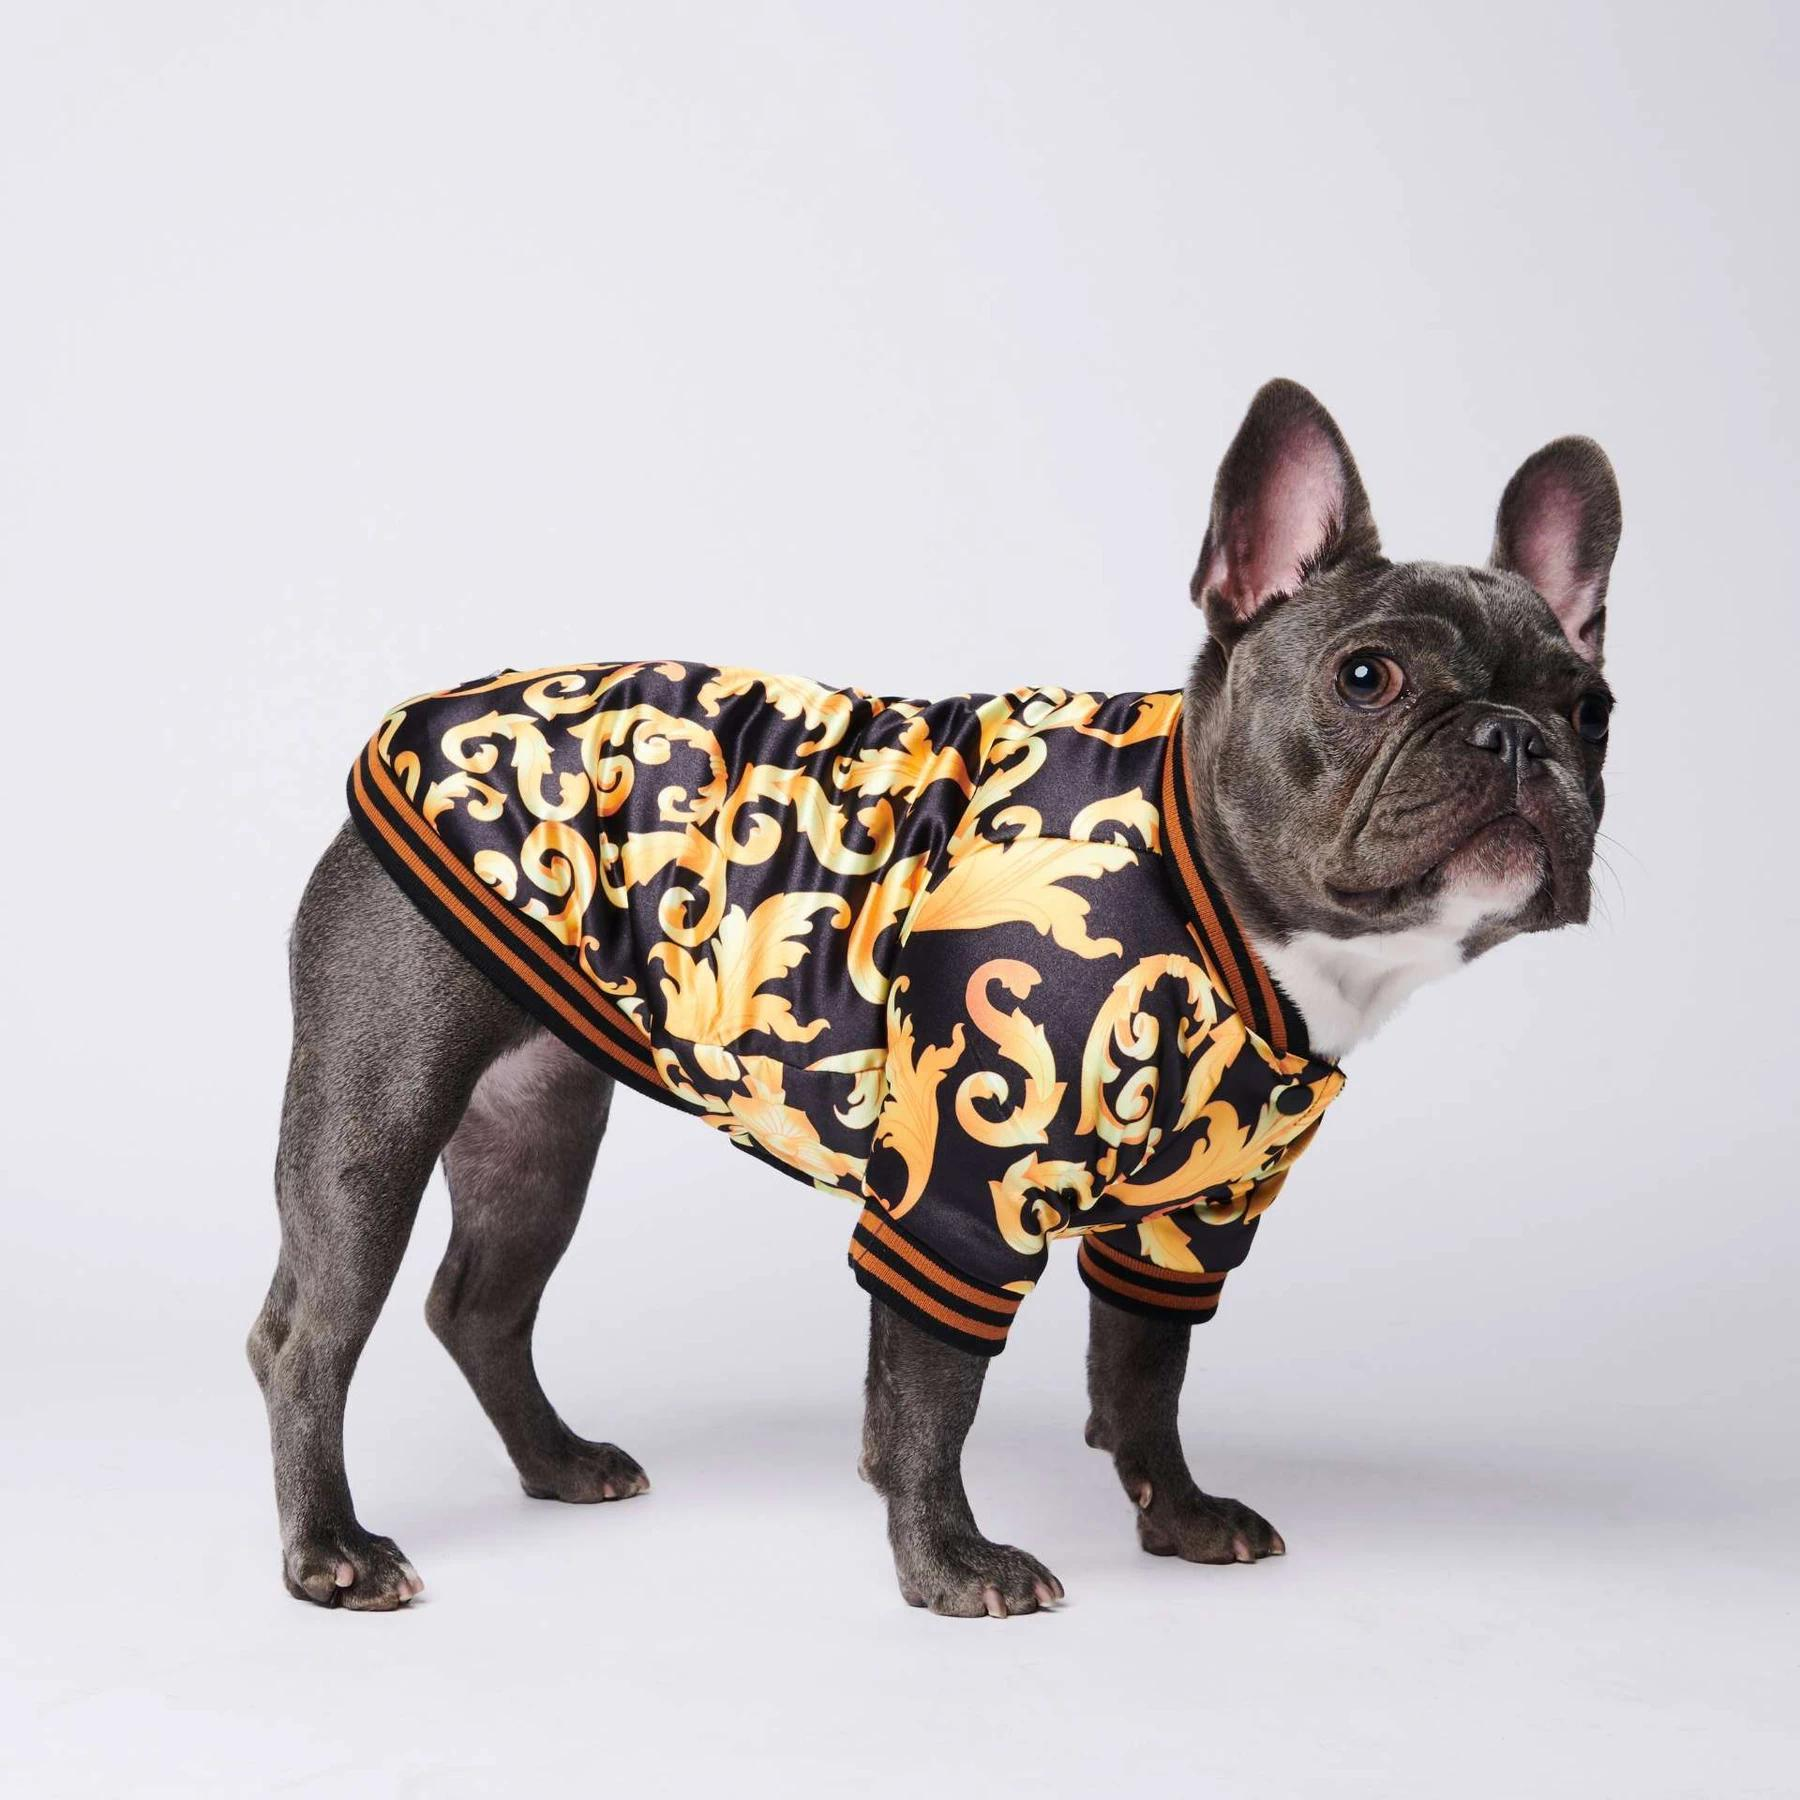 2020 French Bulldog Clothes Dog Jacket Warm Sport Retro Dog Coat Pet Clothes Puppy Dog Pugs Puppy Clothes From Yiyu Hg 19 93 Dhgate Com